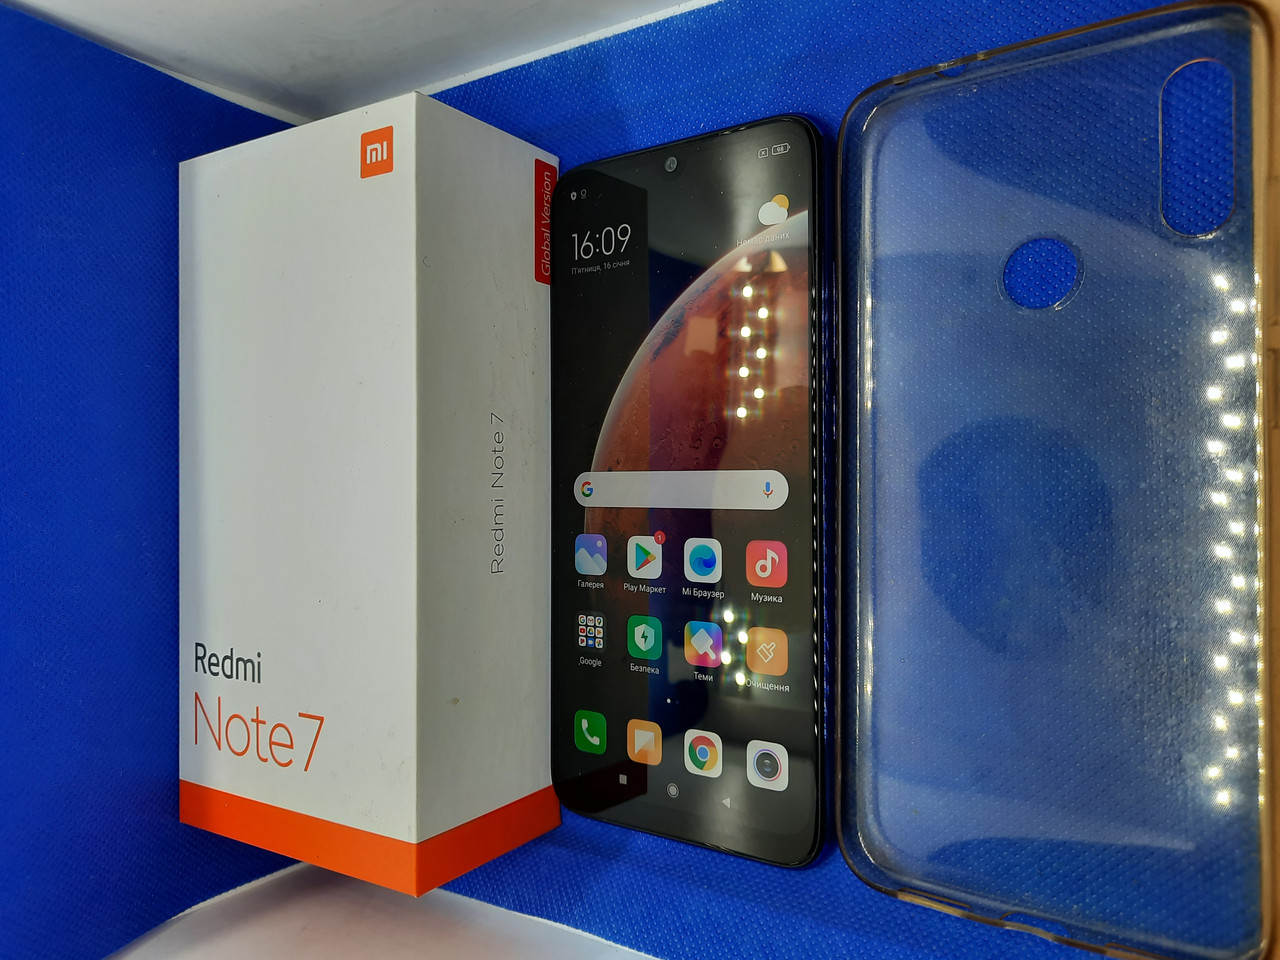 Xiaomi Redmi Note 7 4/64GB ідеал #1260ВР